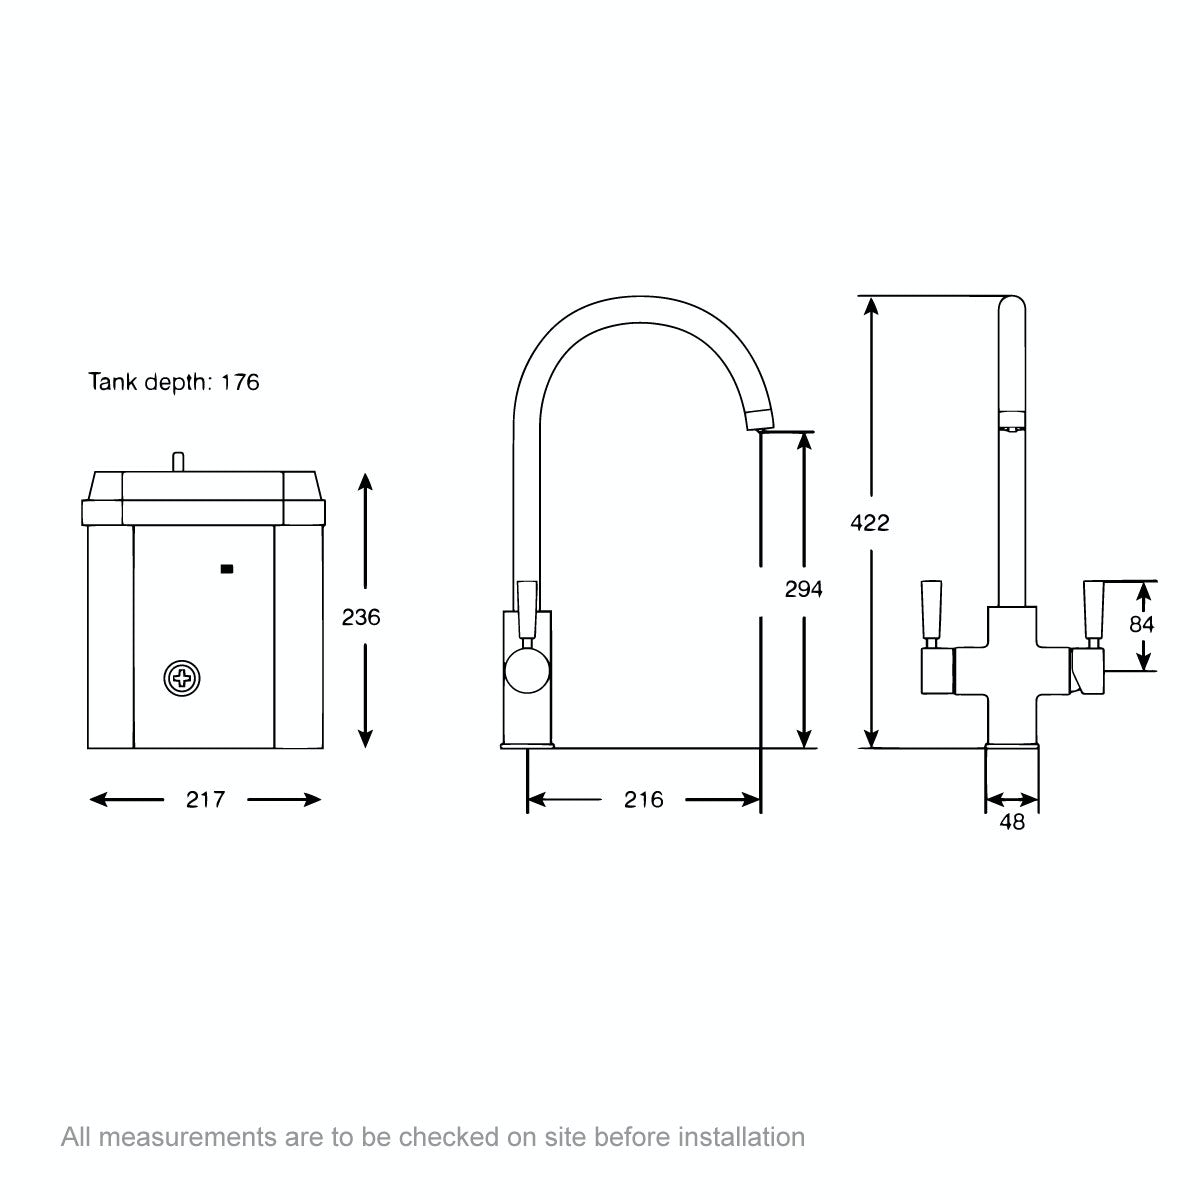 Dimensions for Redring Reditap 3 in 1 boiling water tap